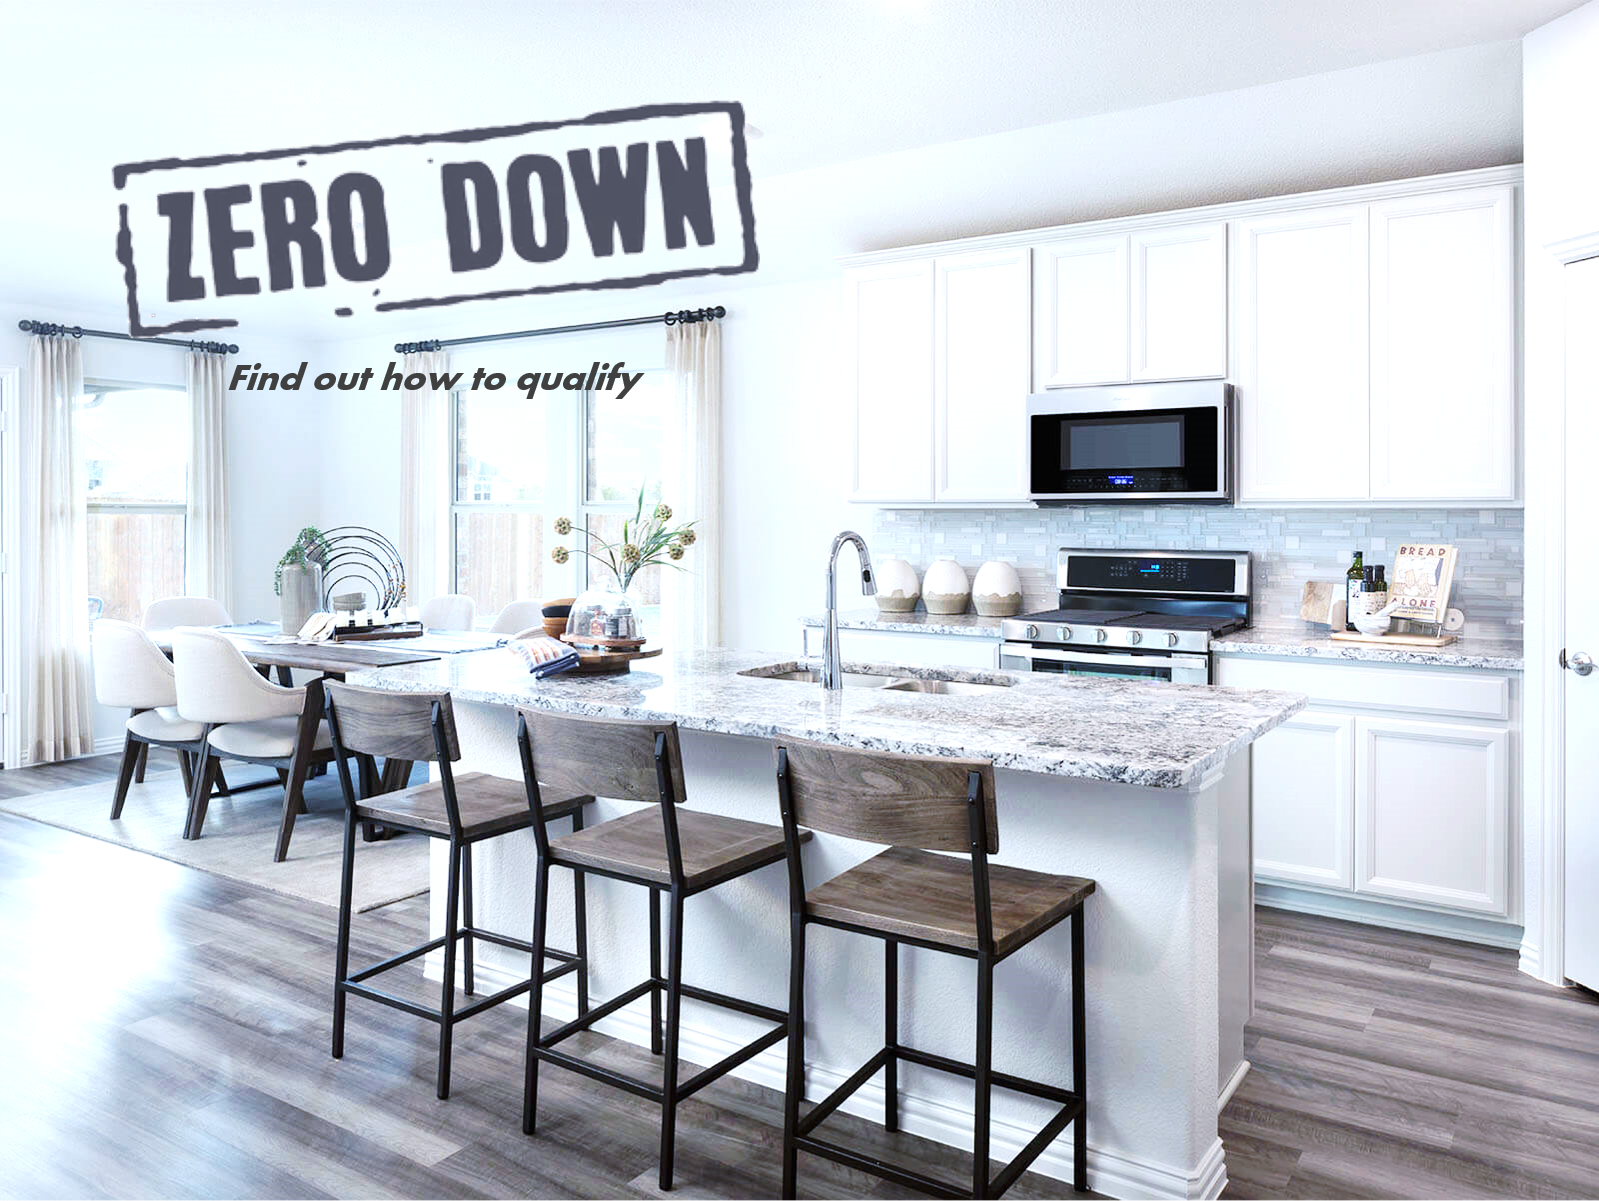 Zero Down Loans and Home Ownership